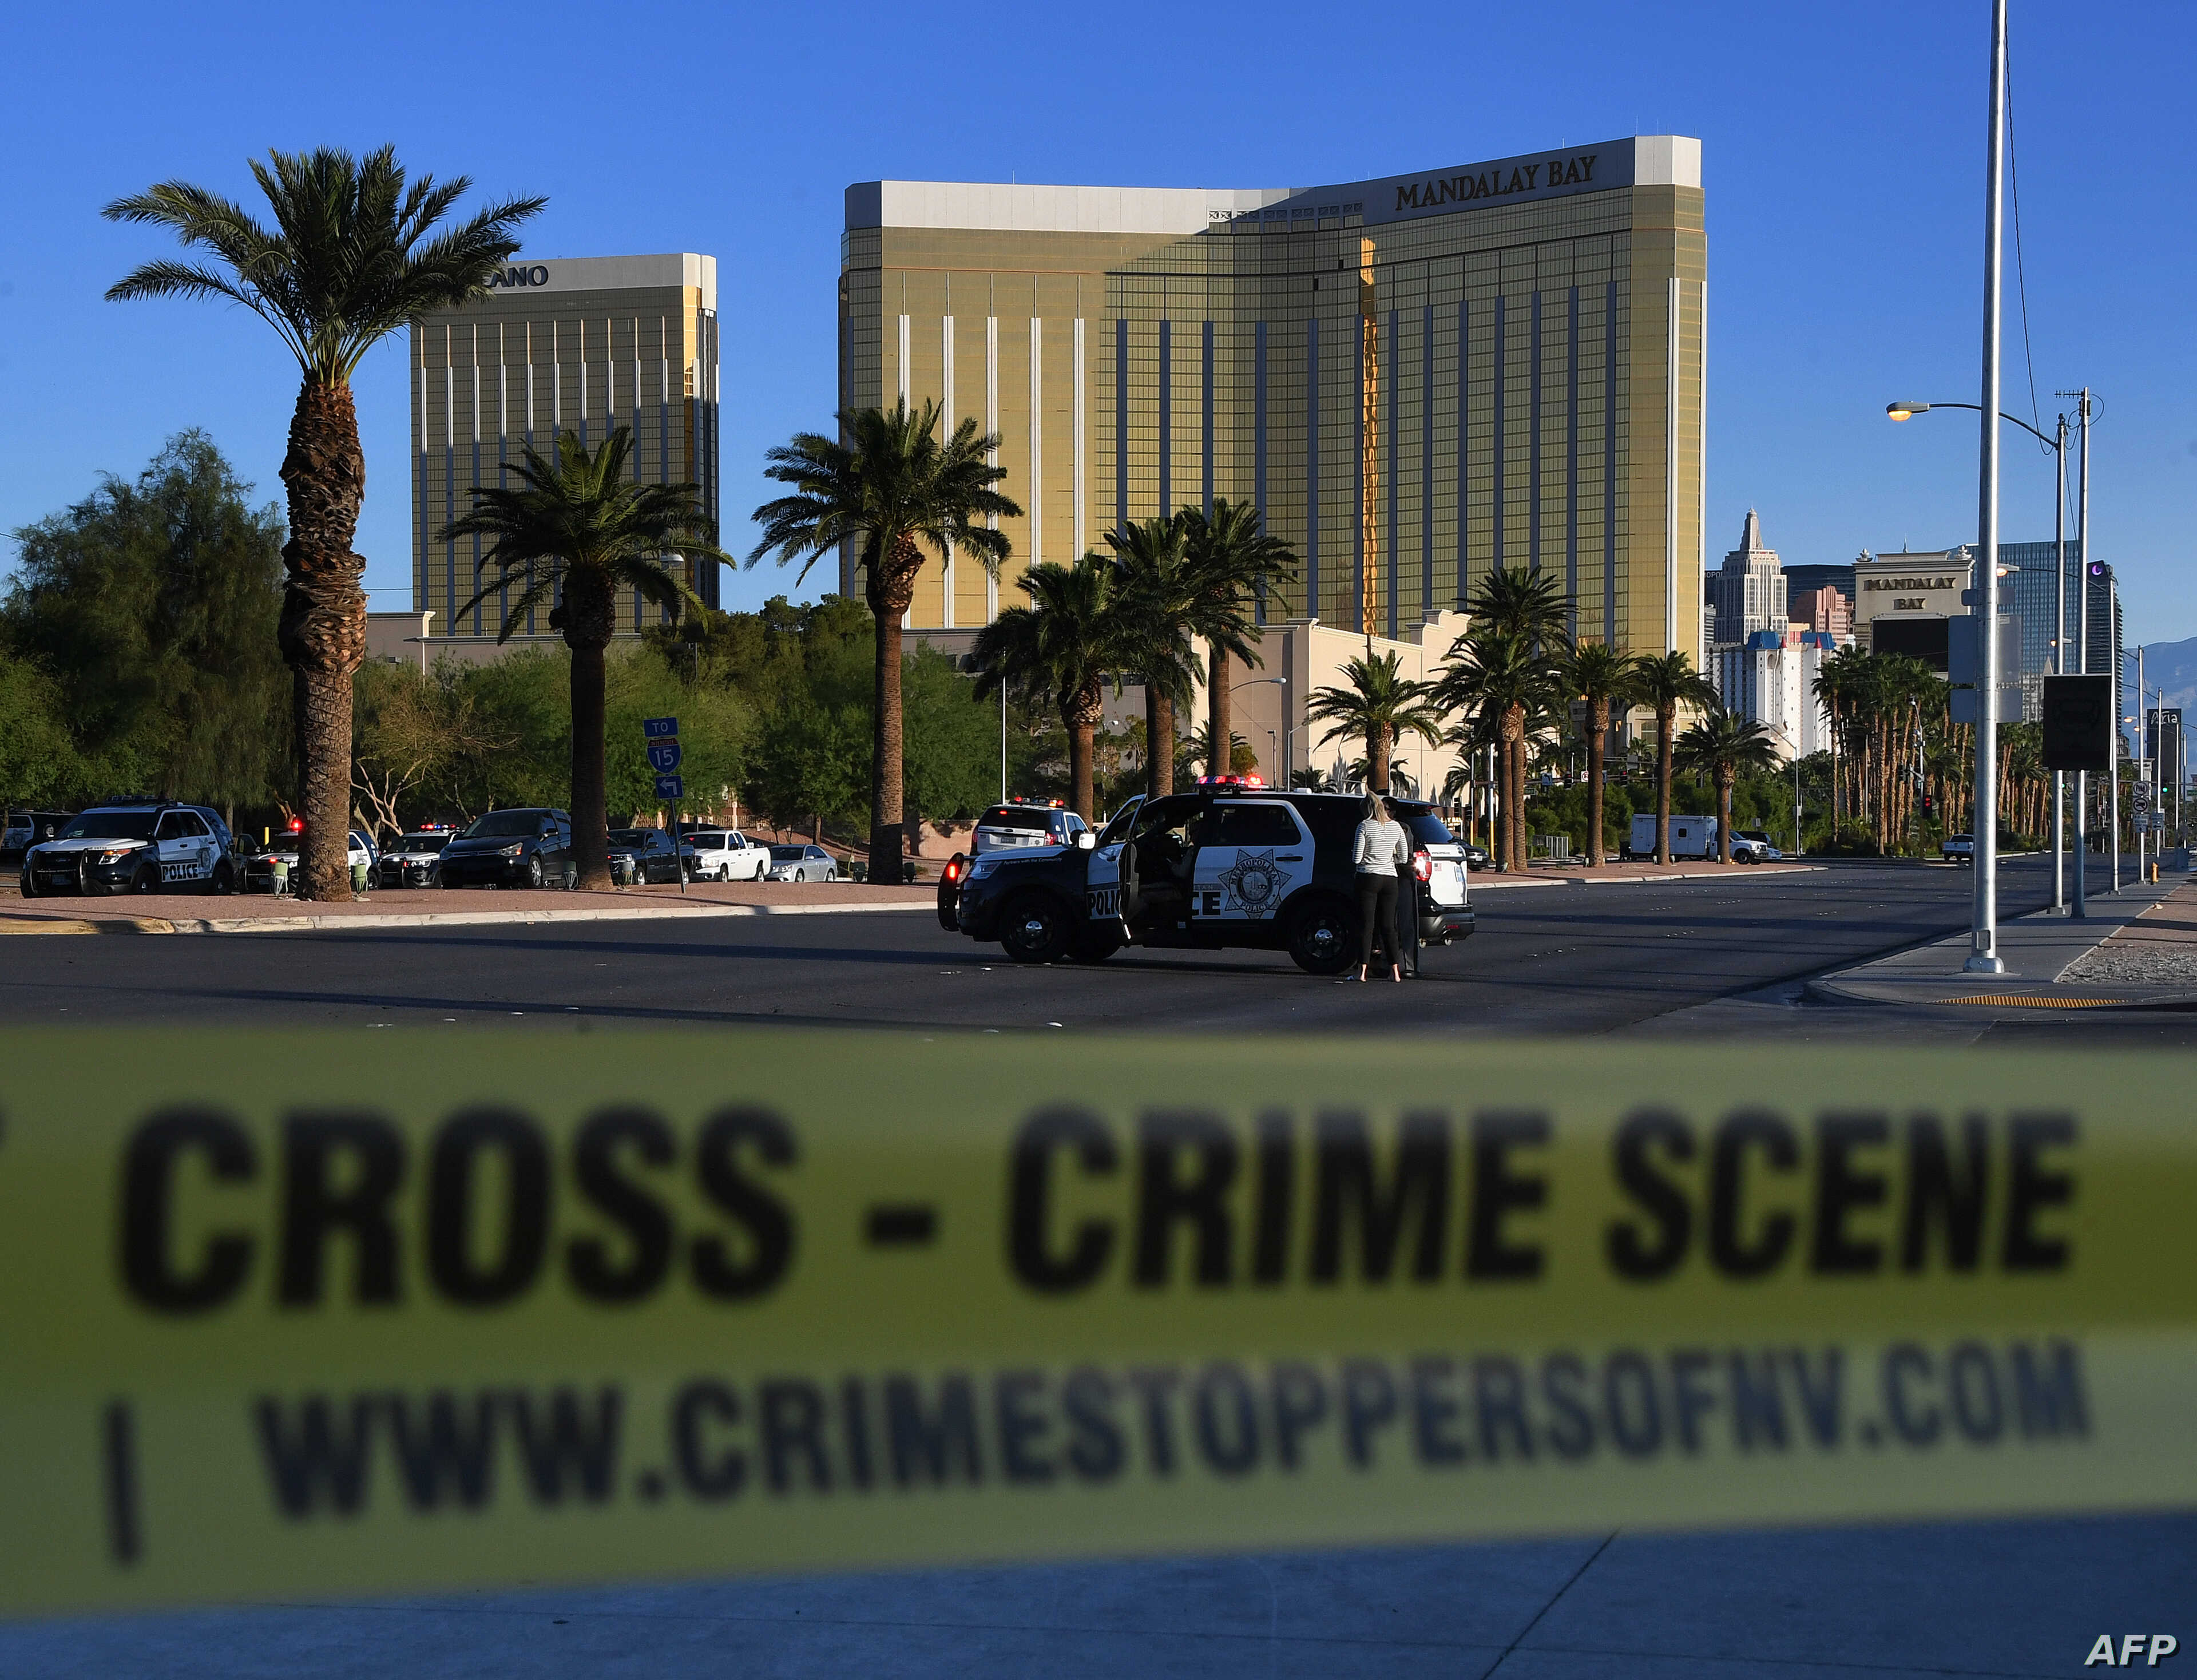 Family Attractions Vie With Gambling, Prostitution in Las